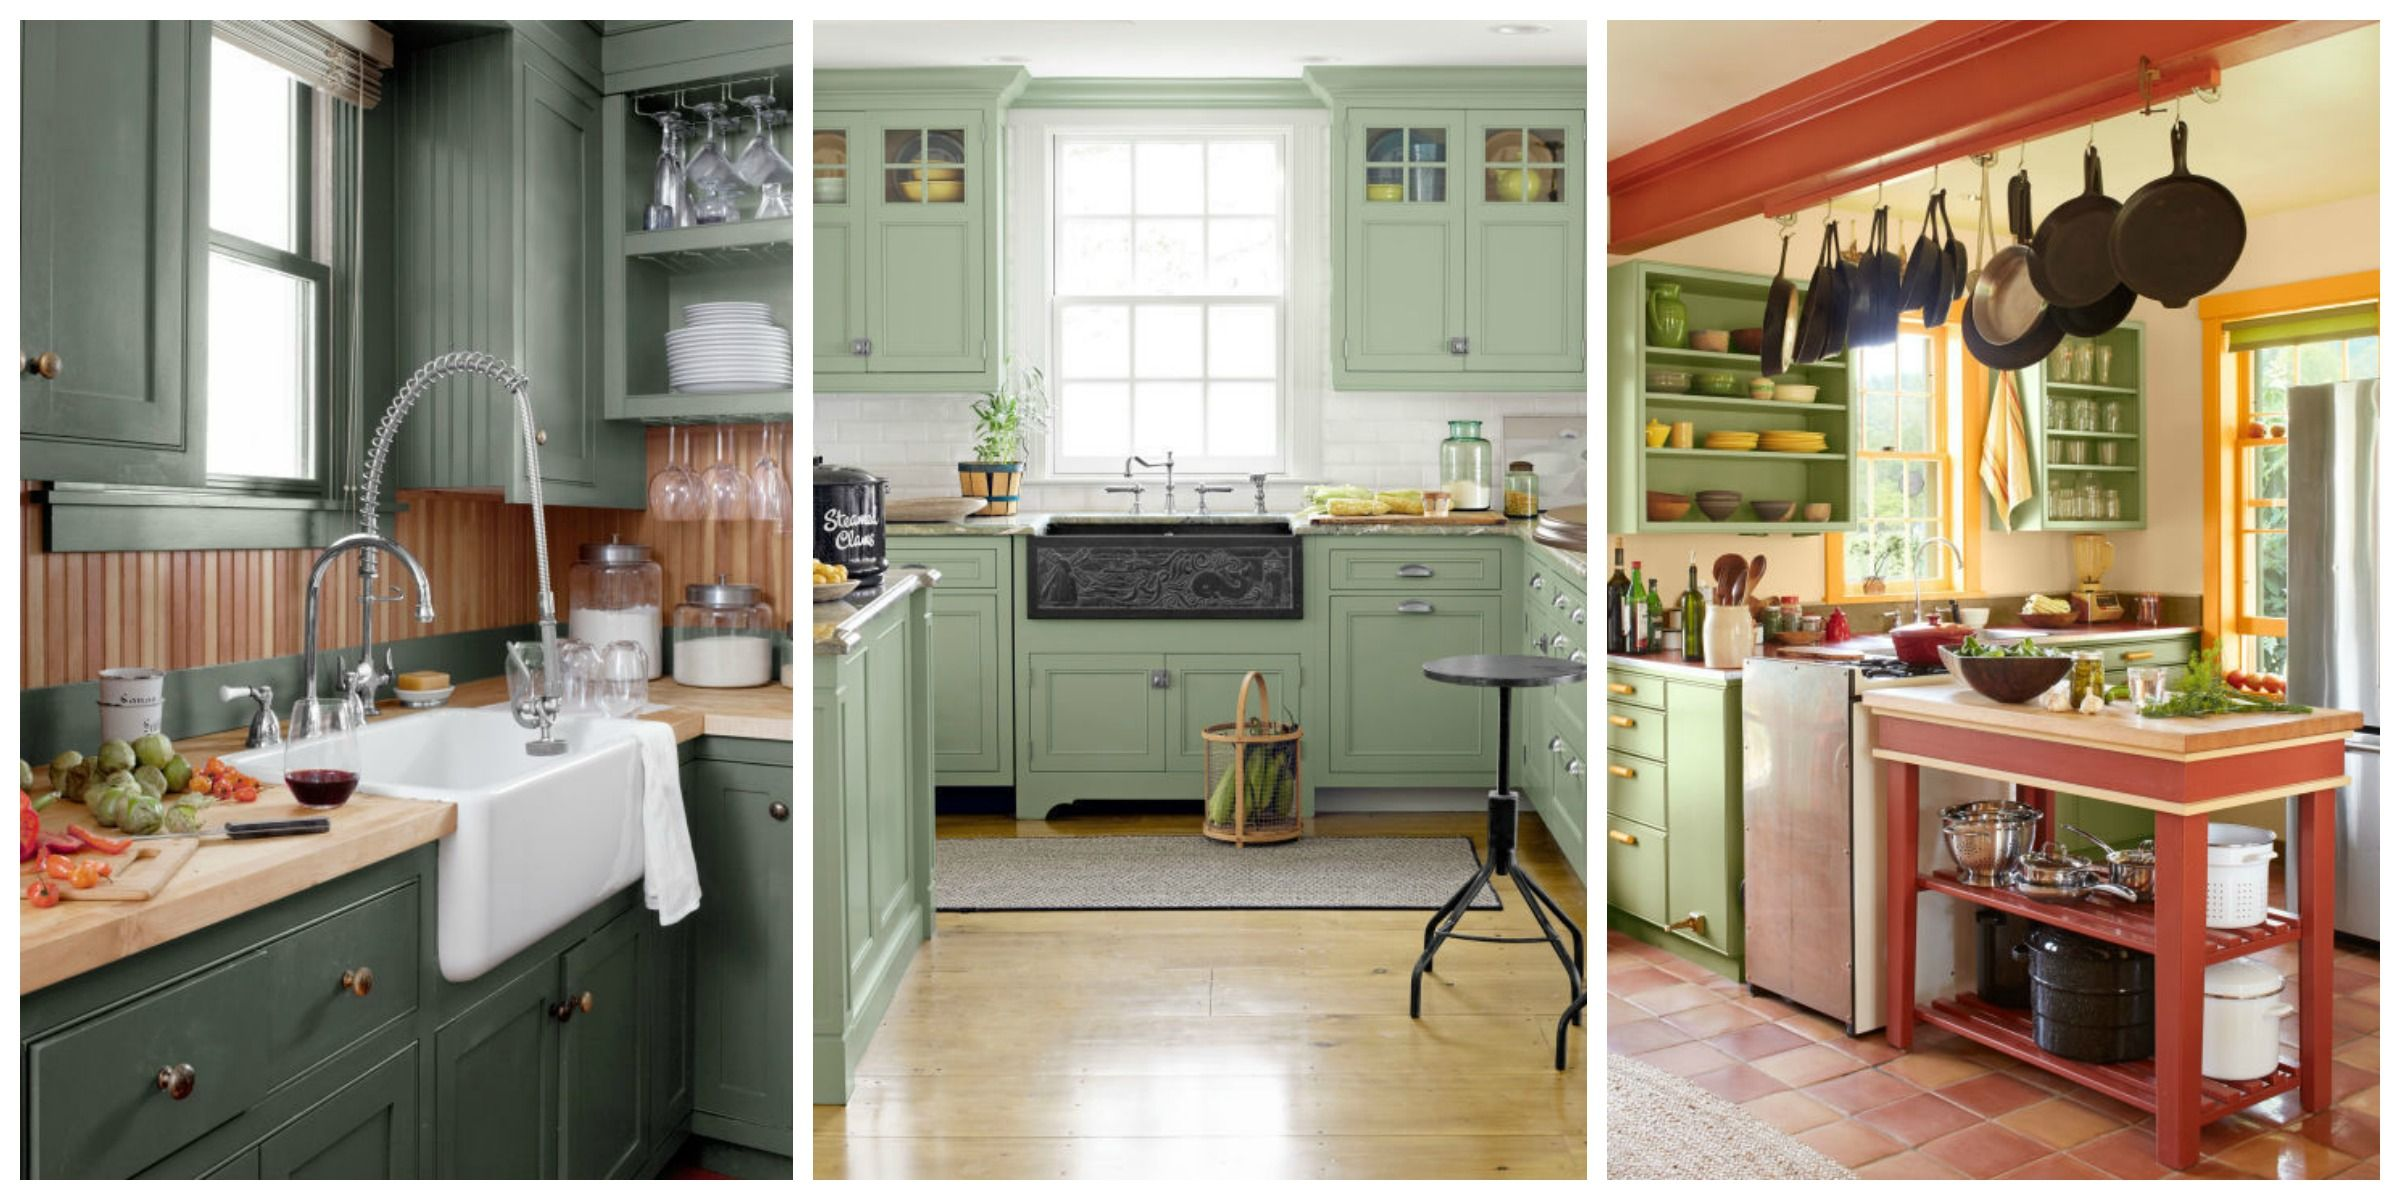 White Sage Paint 10 Green Kitchen Ideas Best Green Paint Colors For Kitchens